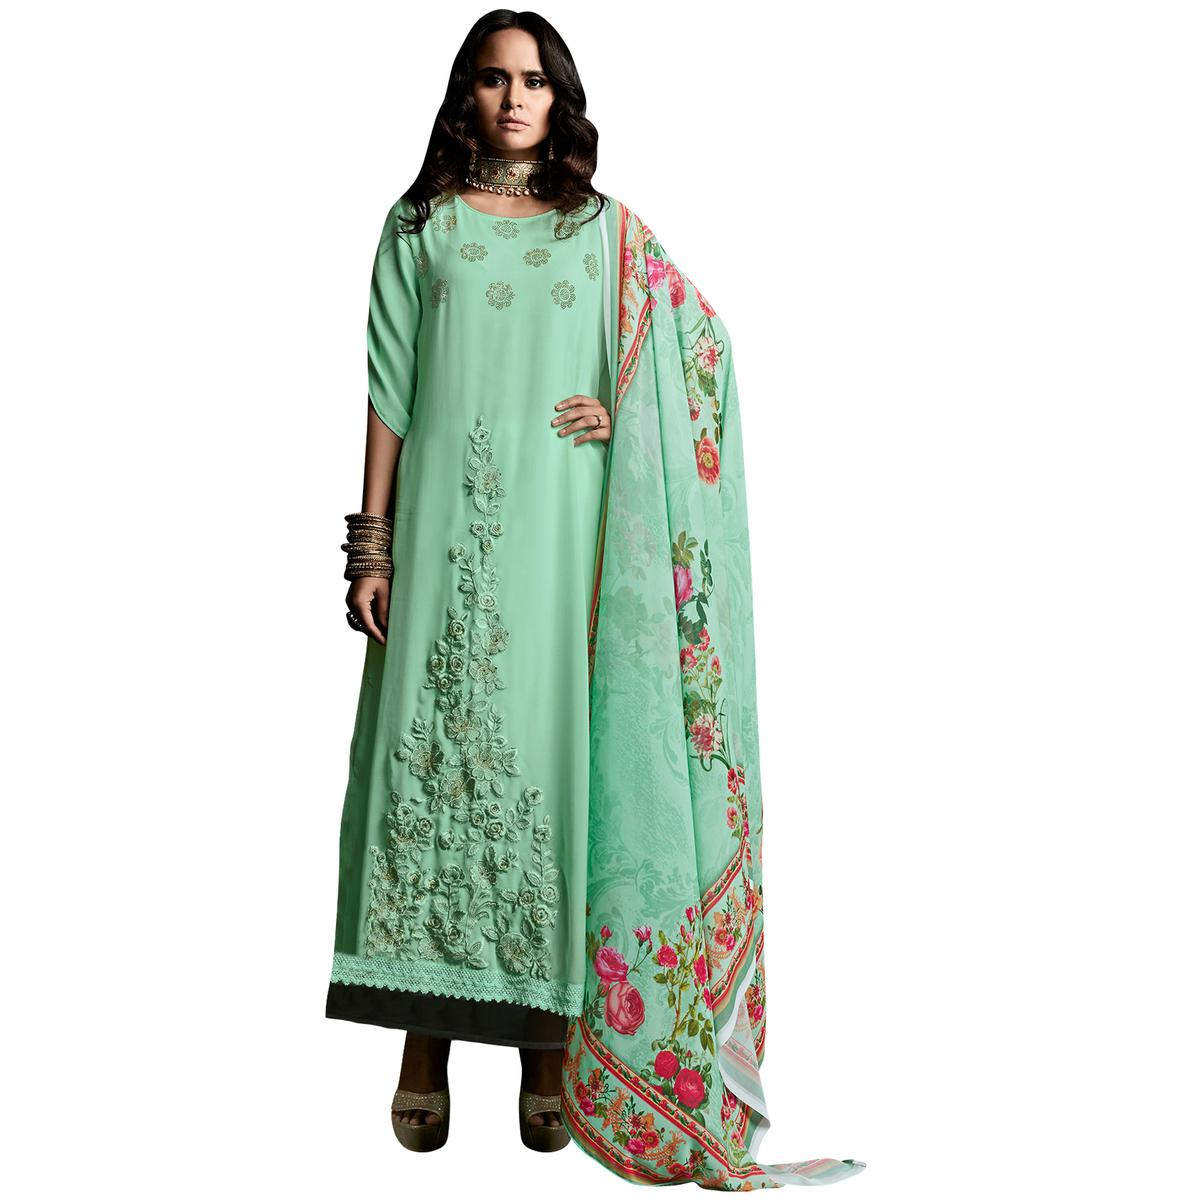 Glowing Sea Green Colored Designer Embroidered Georgette Suit